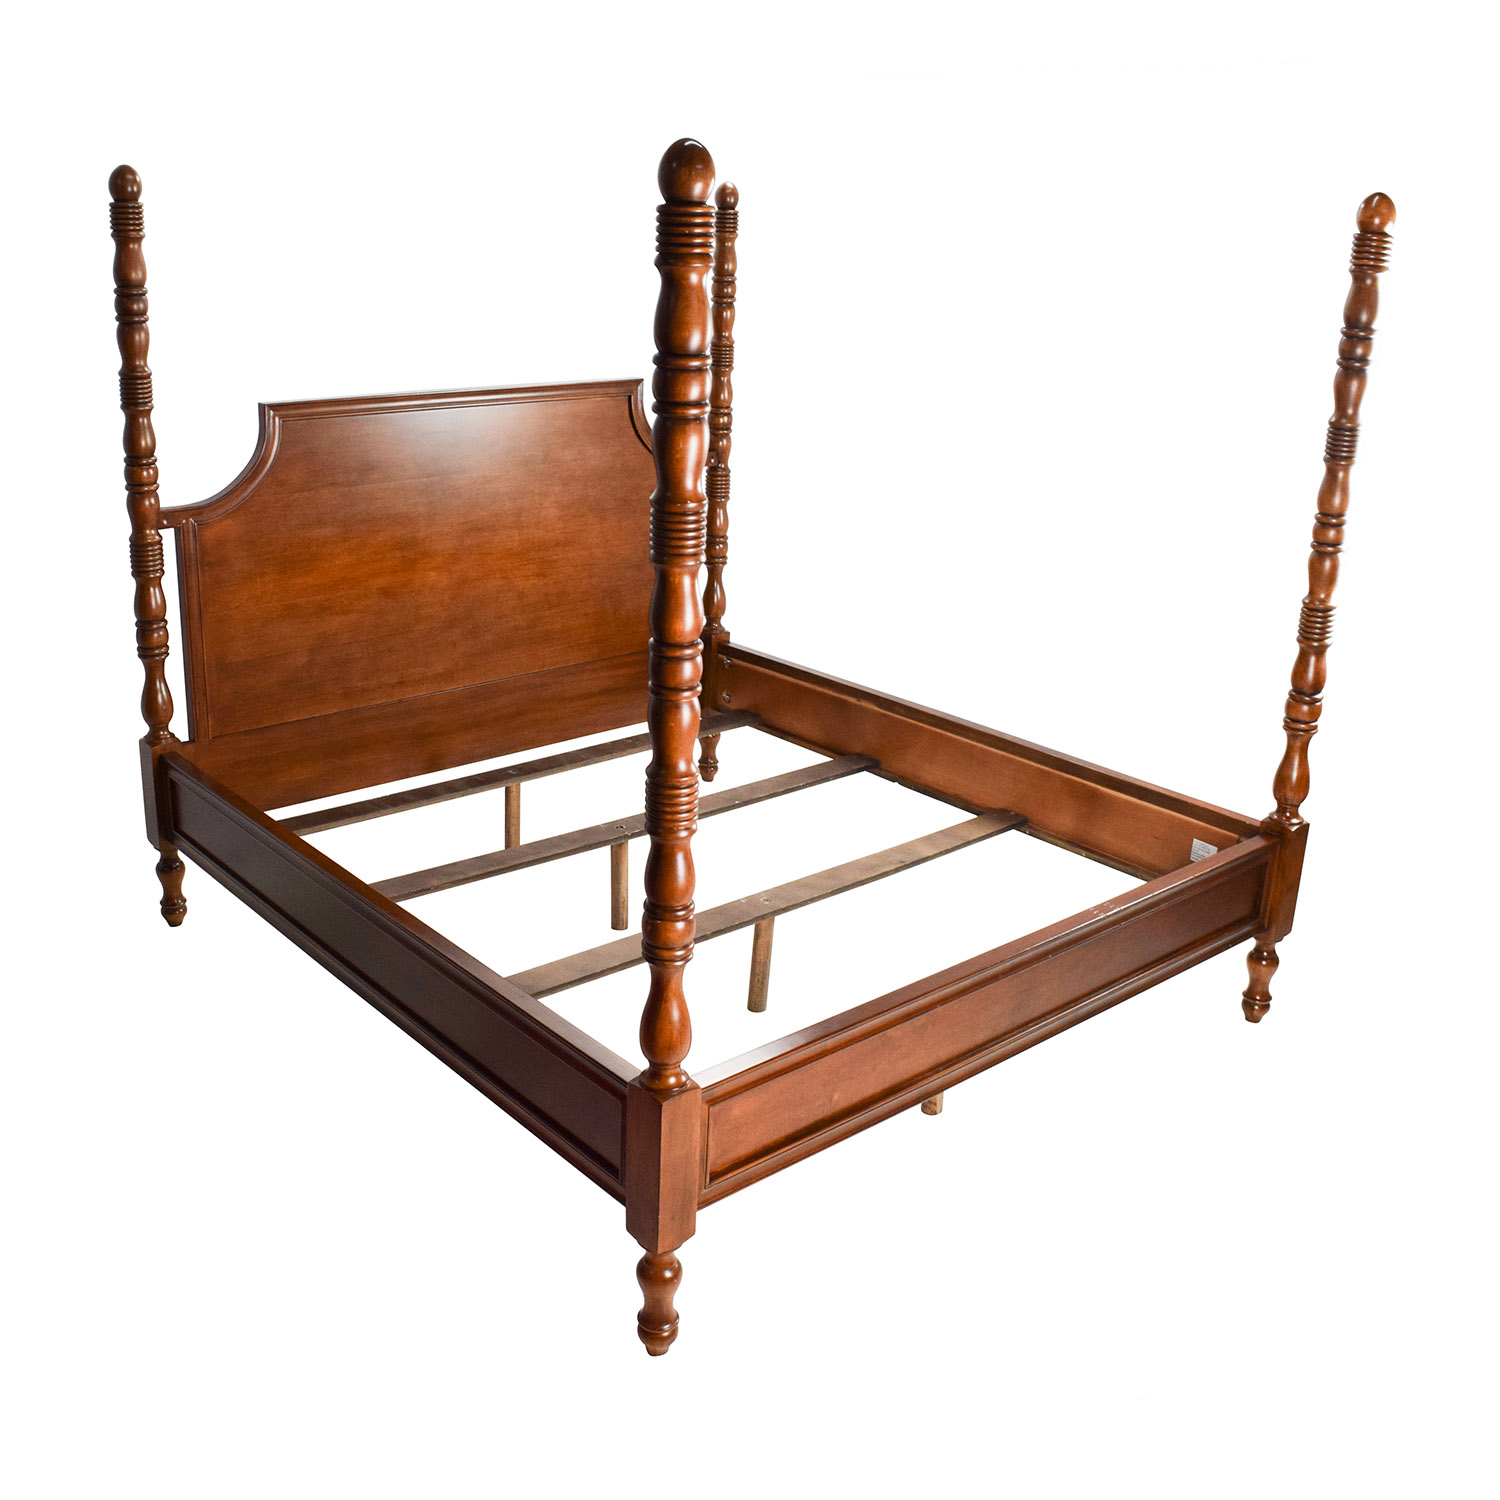 77 off thomasville furniture thomasville king size for King size bunk bed